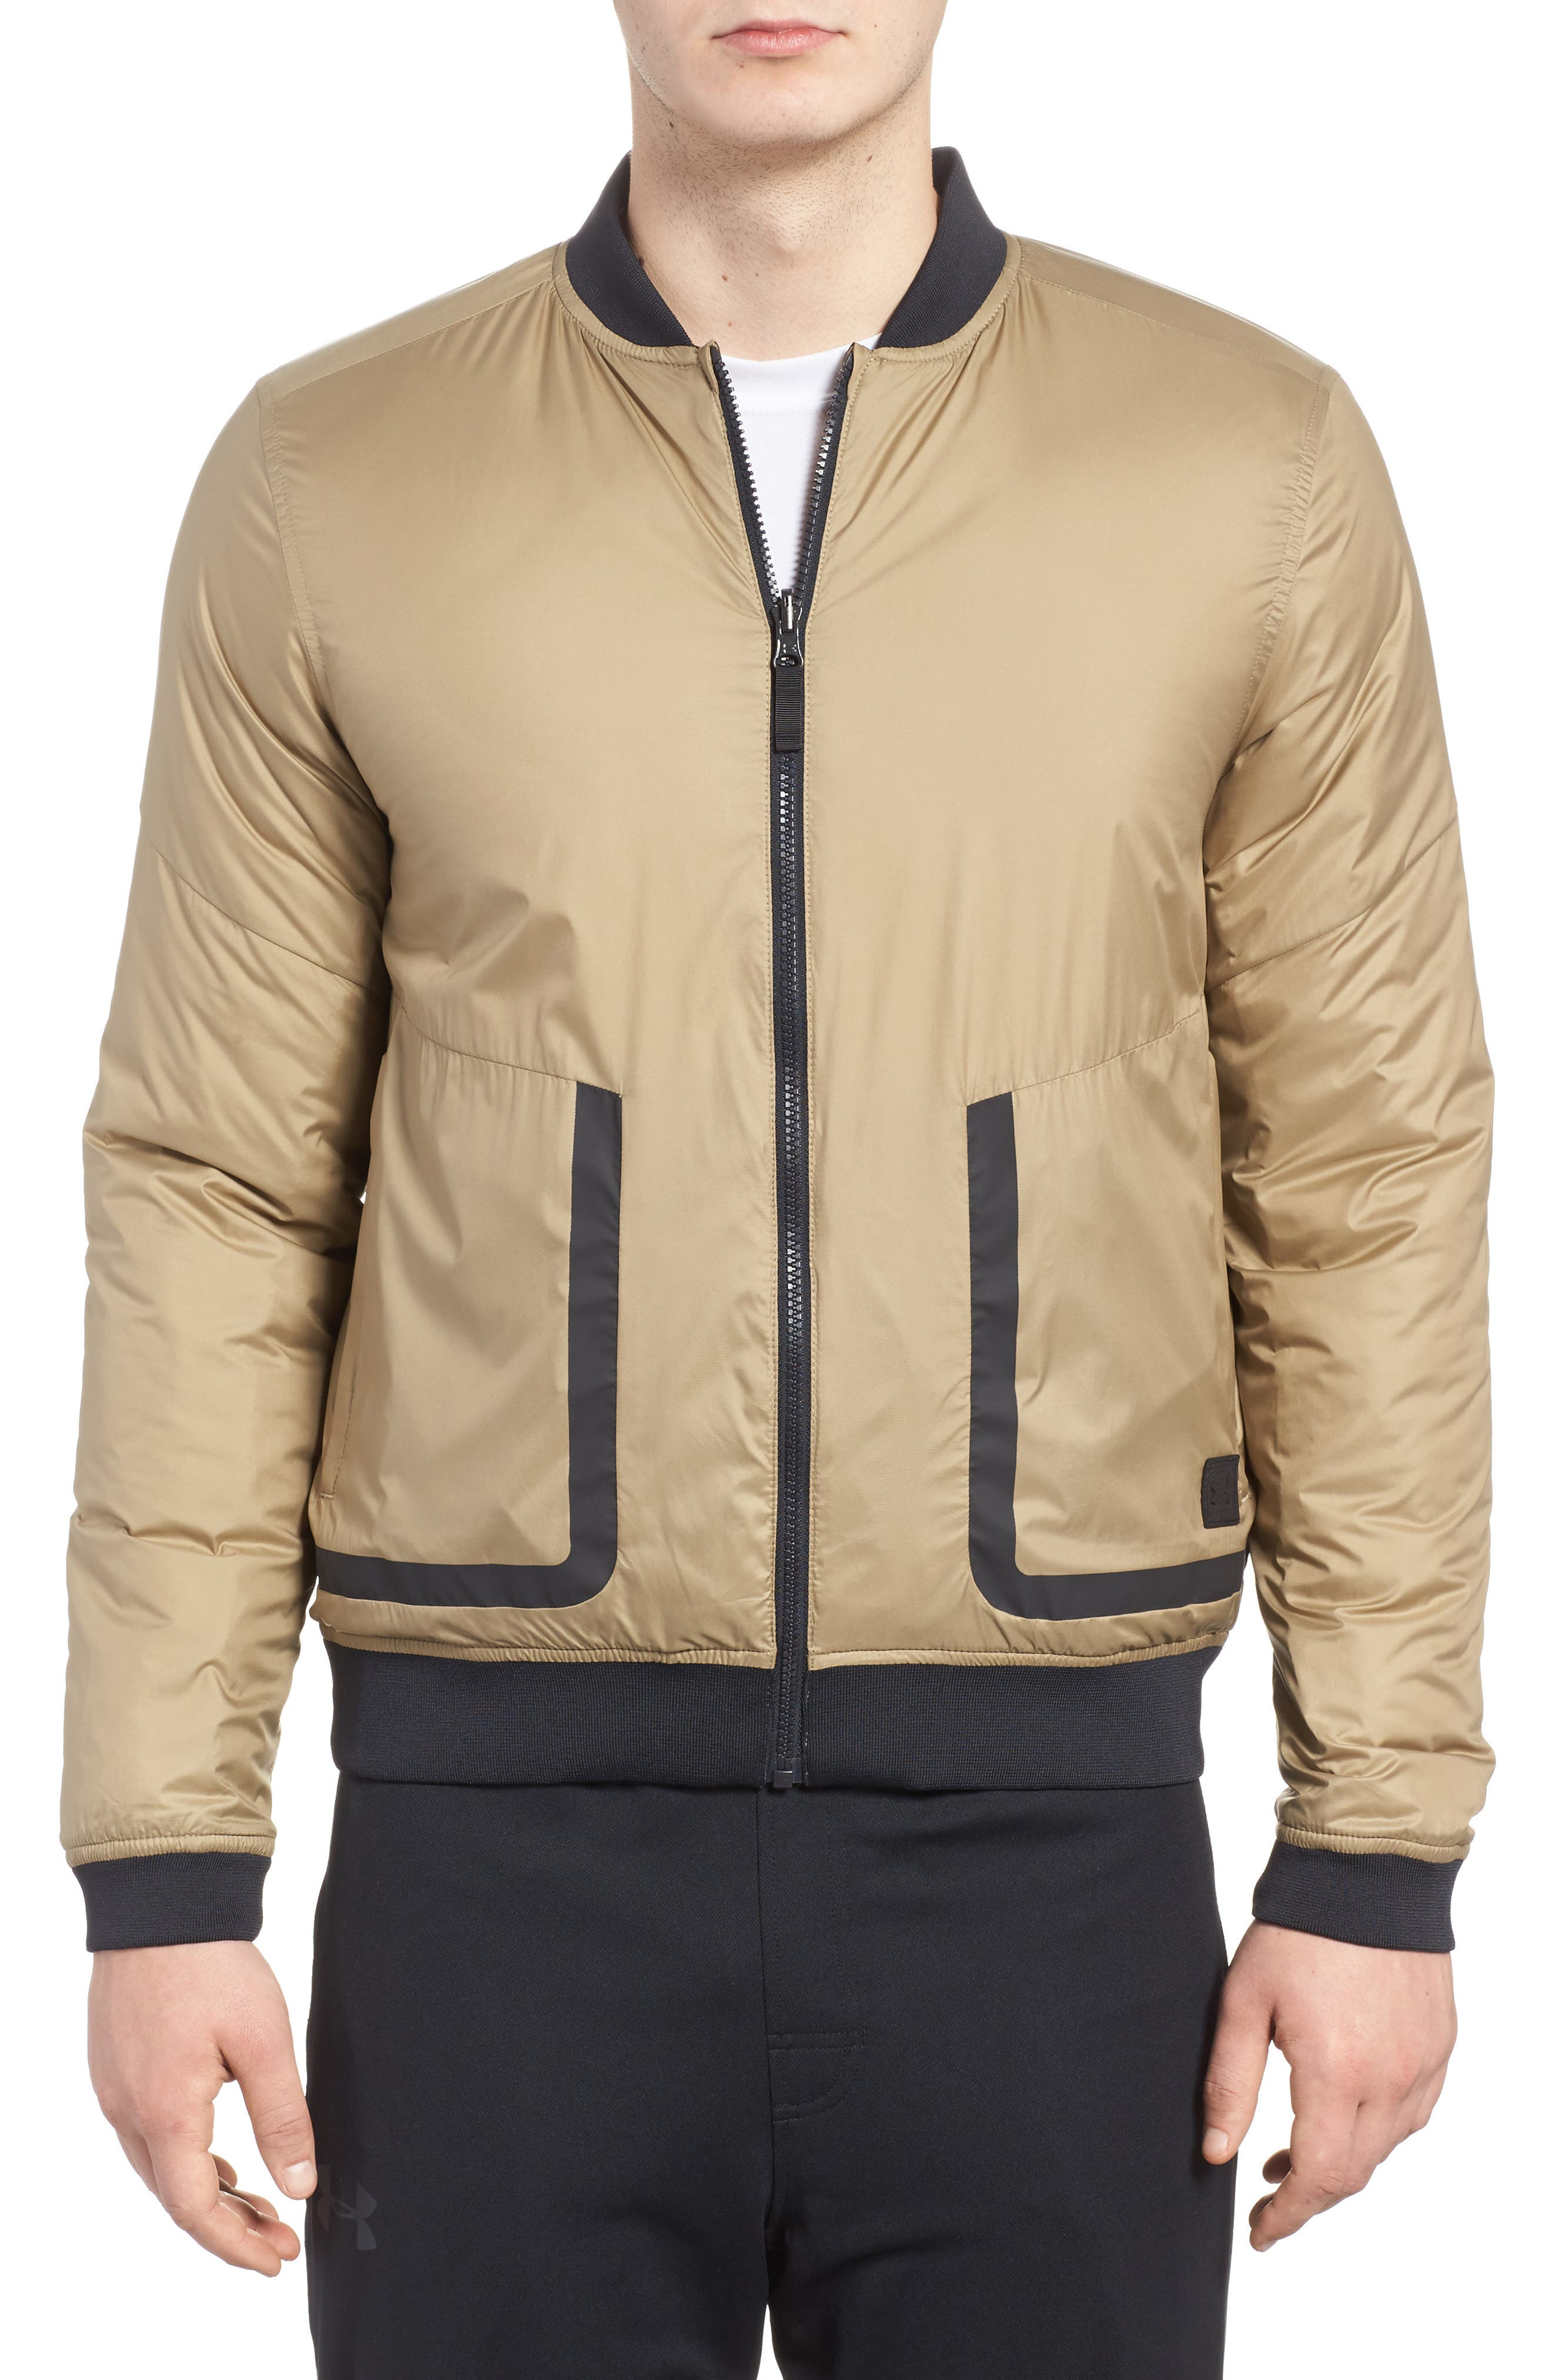 Sportstyle Reactor Reversible Bomber Jacket,                         Main,                         color, Canvas / Bay Brown / Black